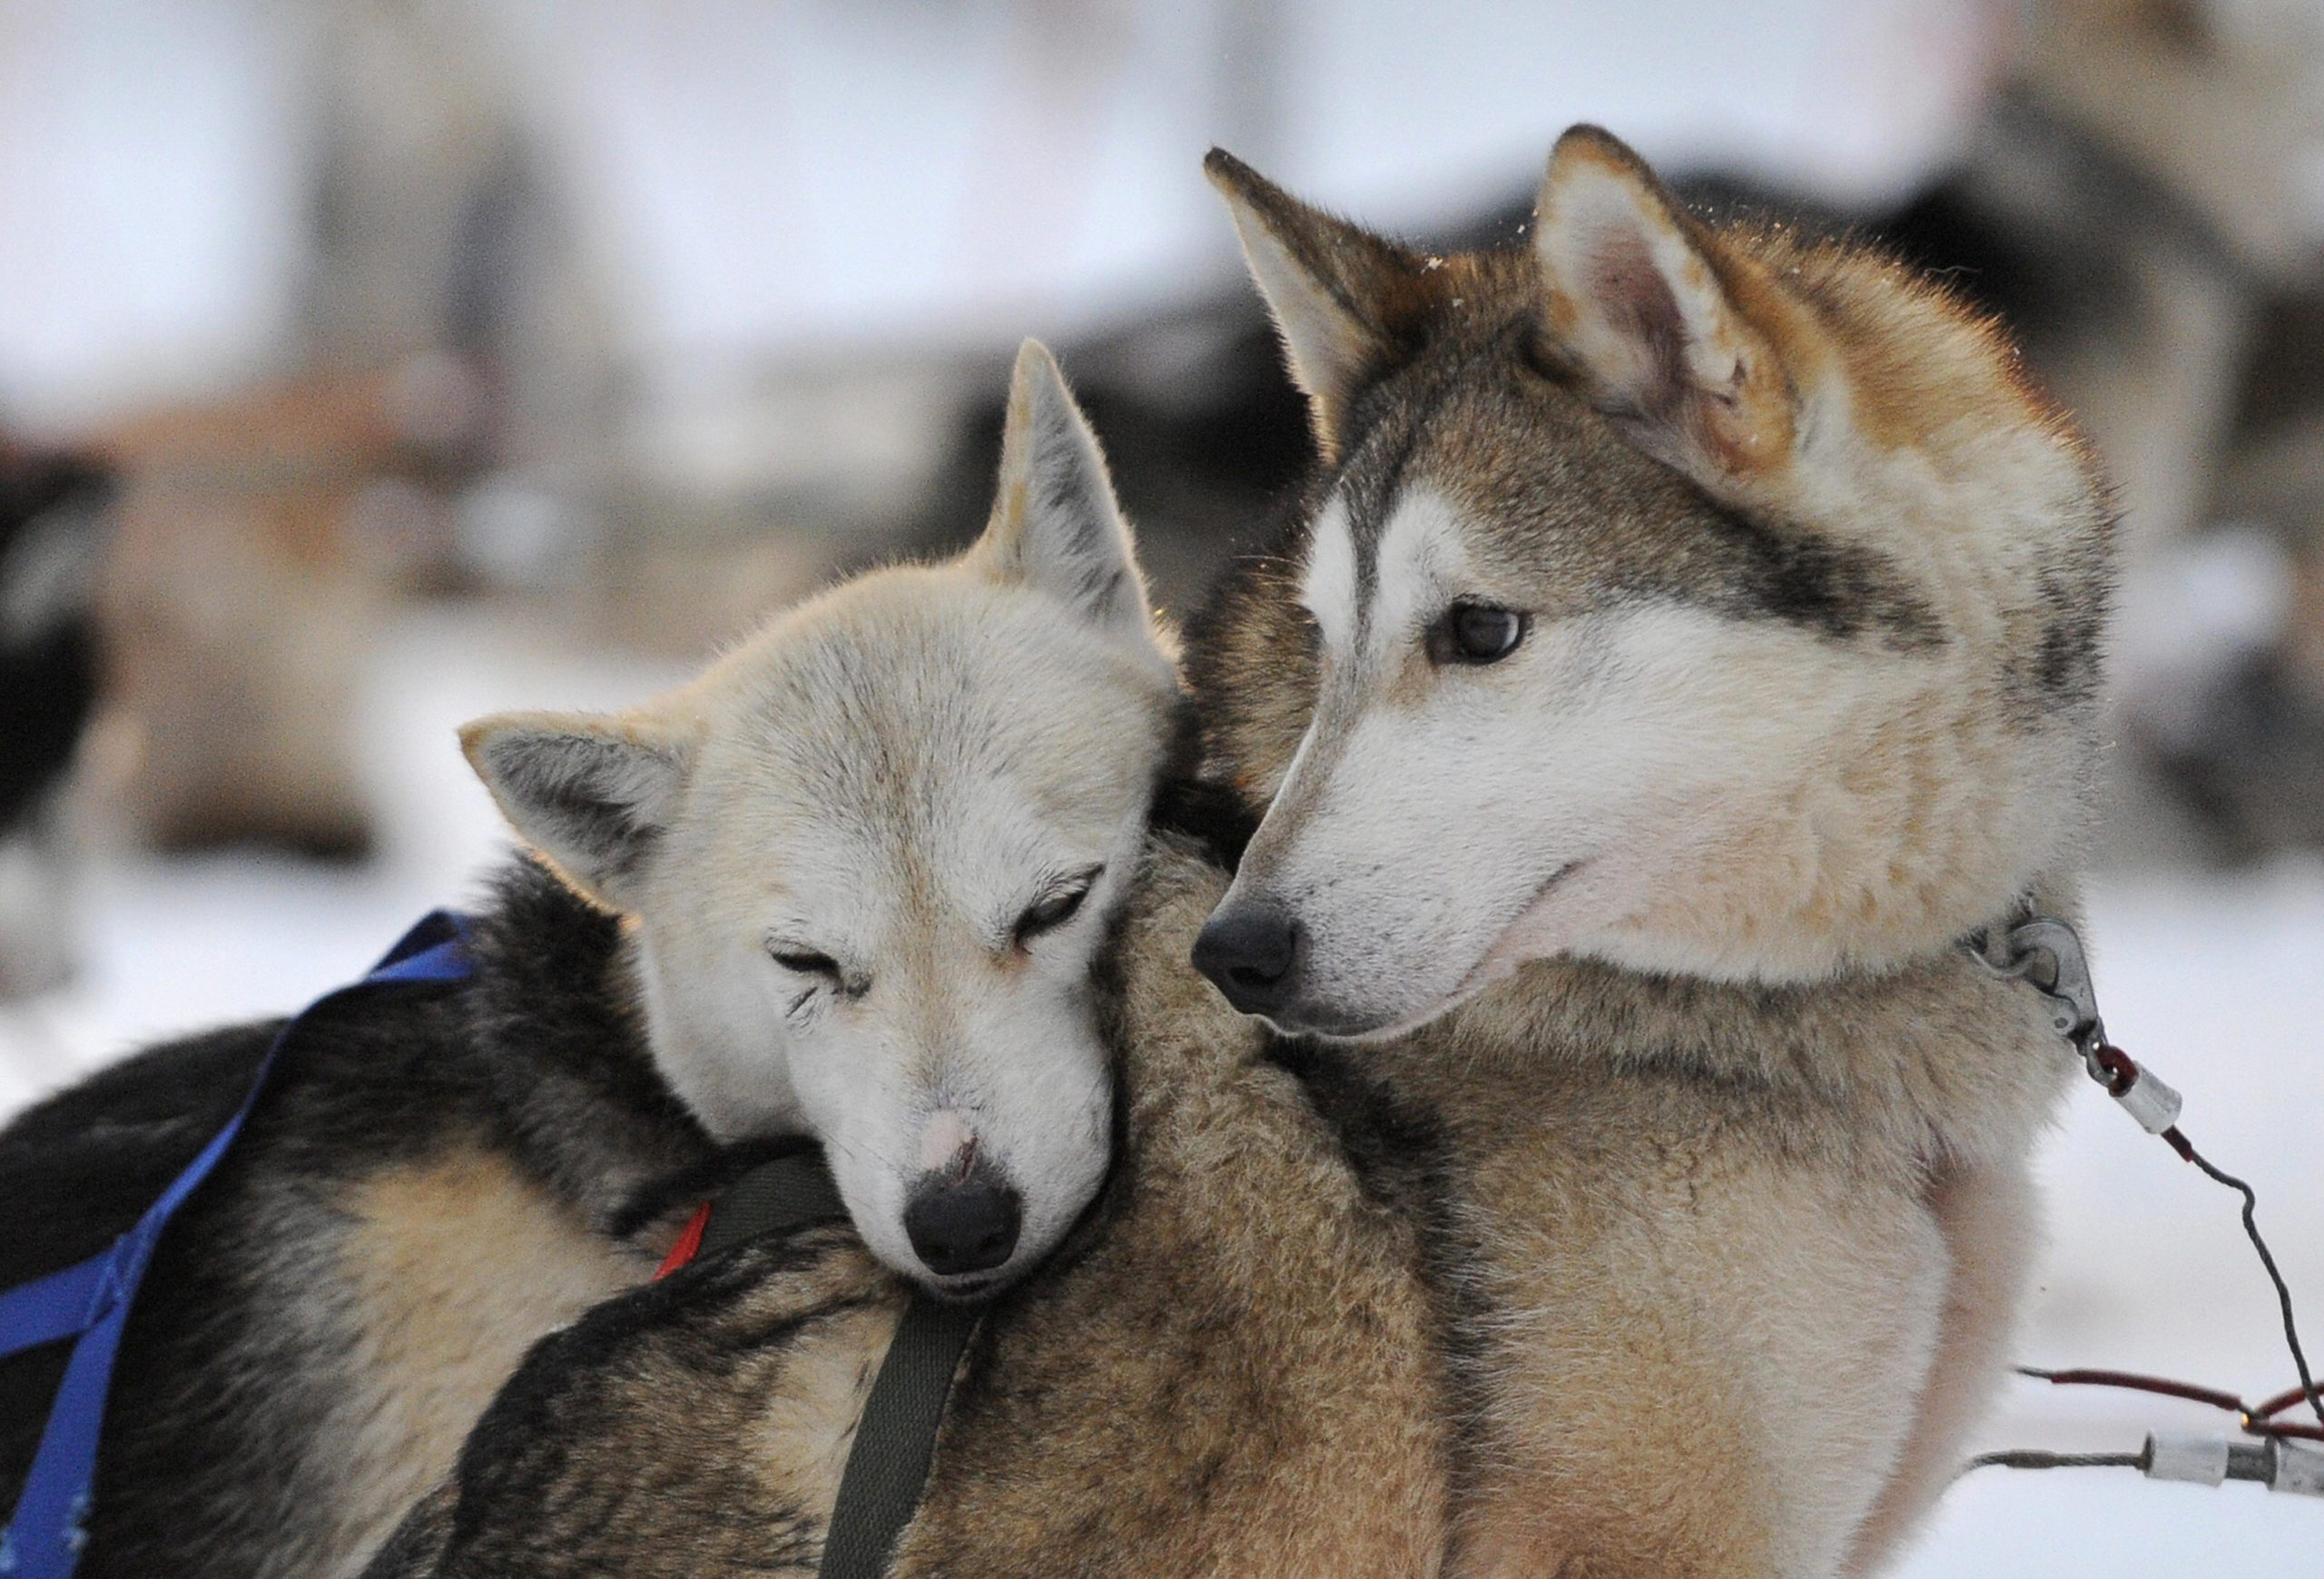 A Siberian Husky resting on another dog